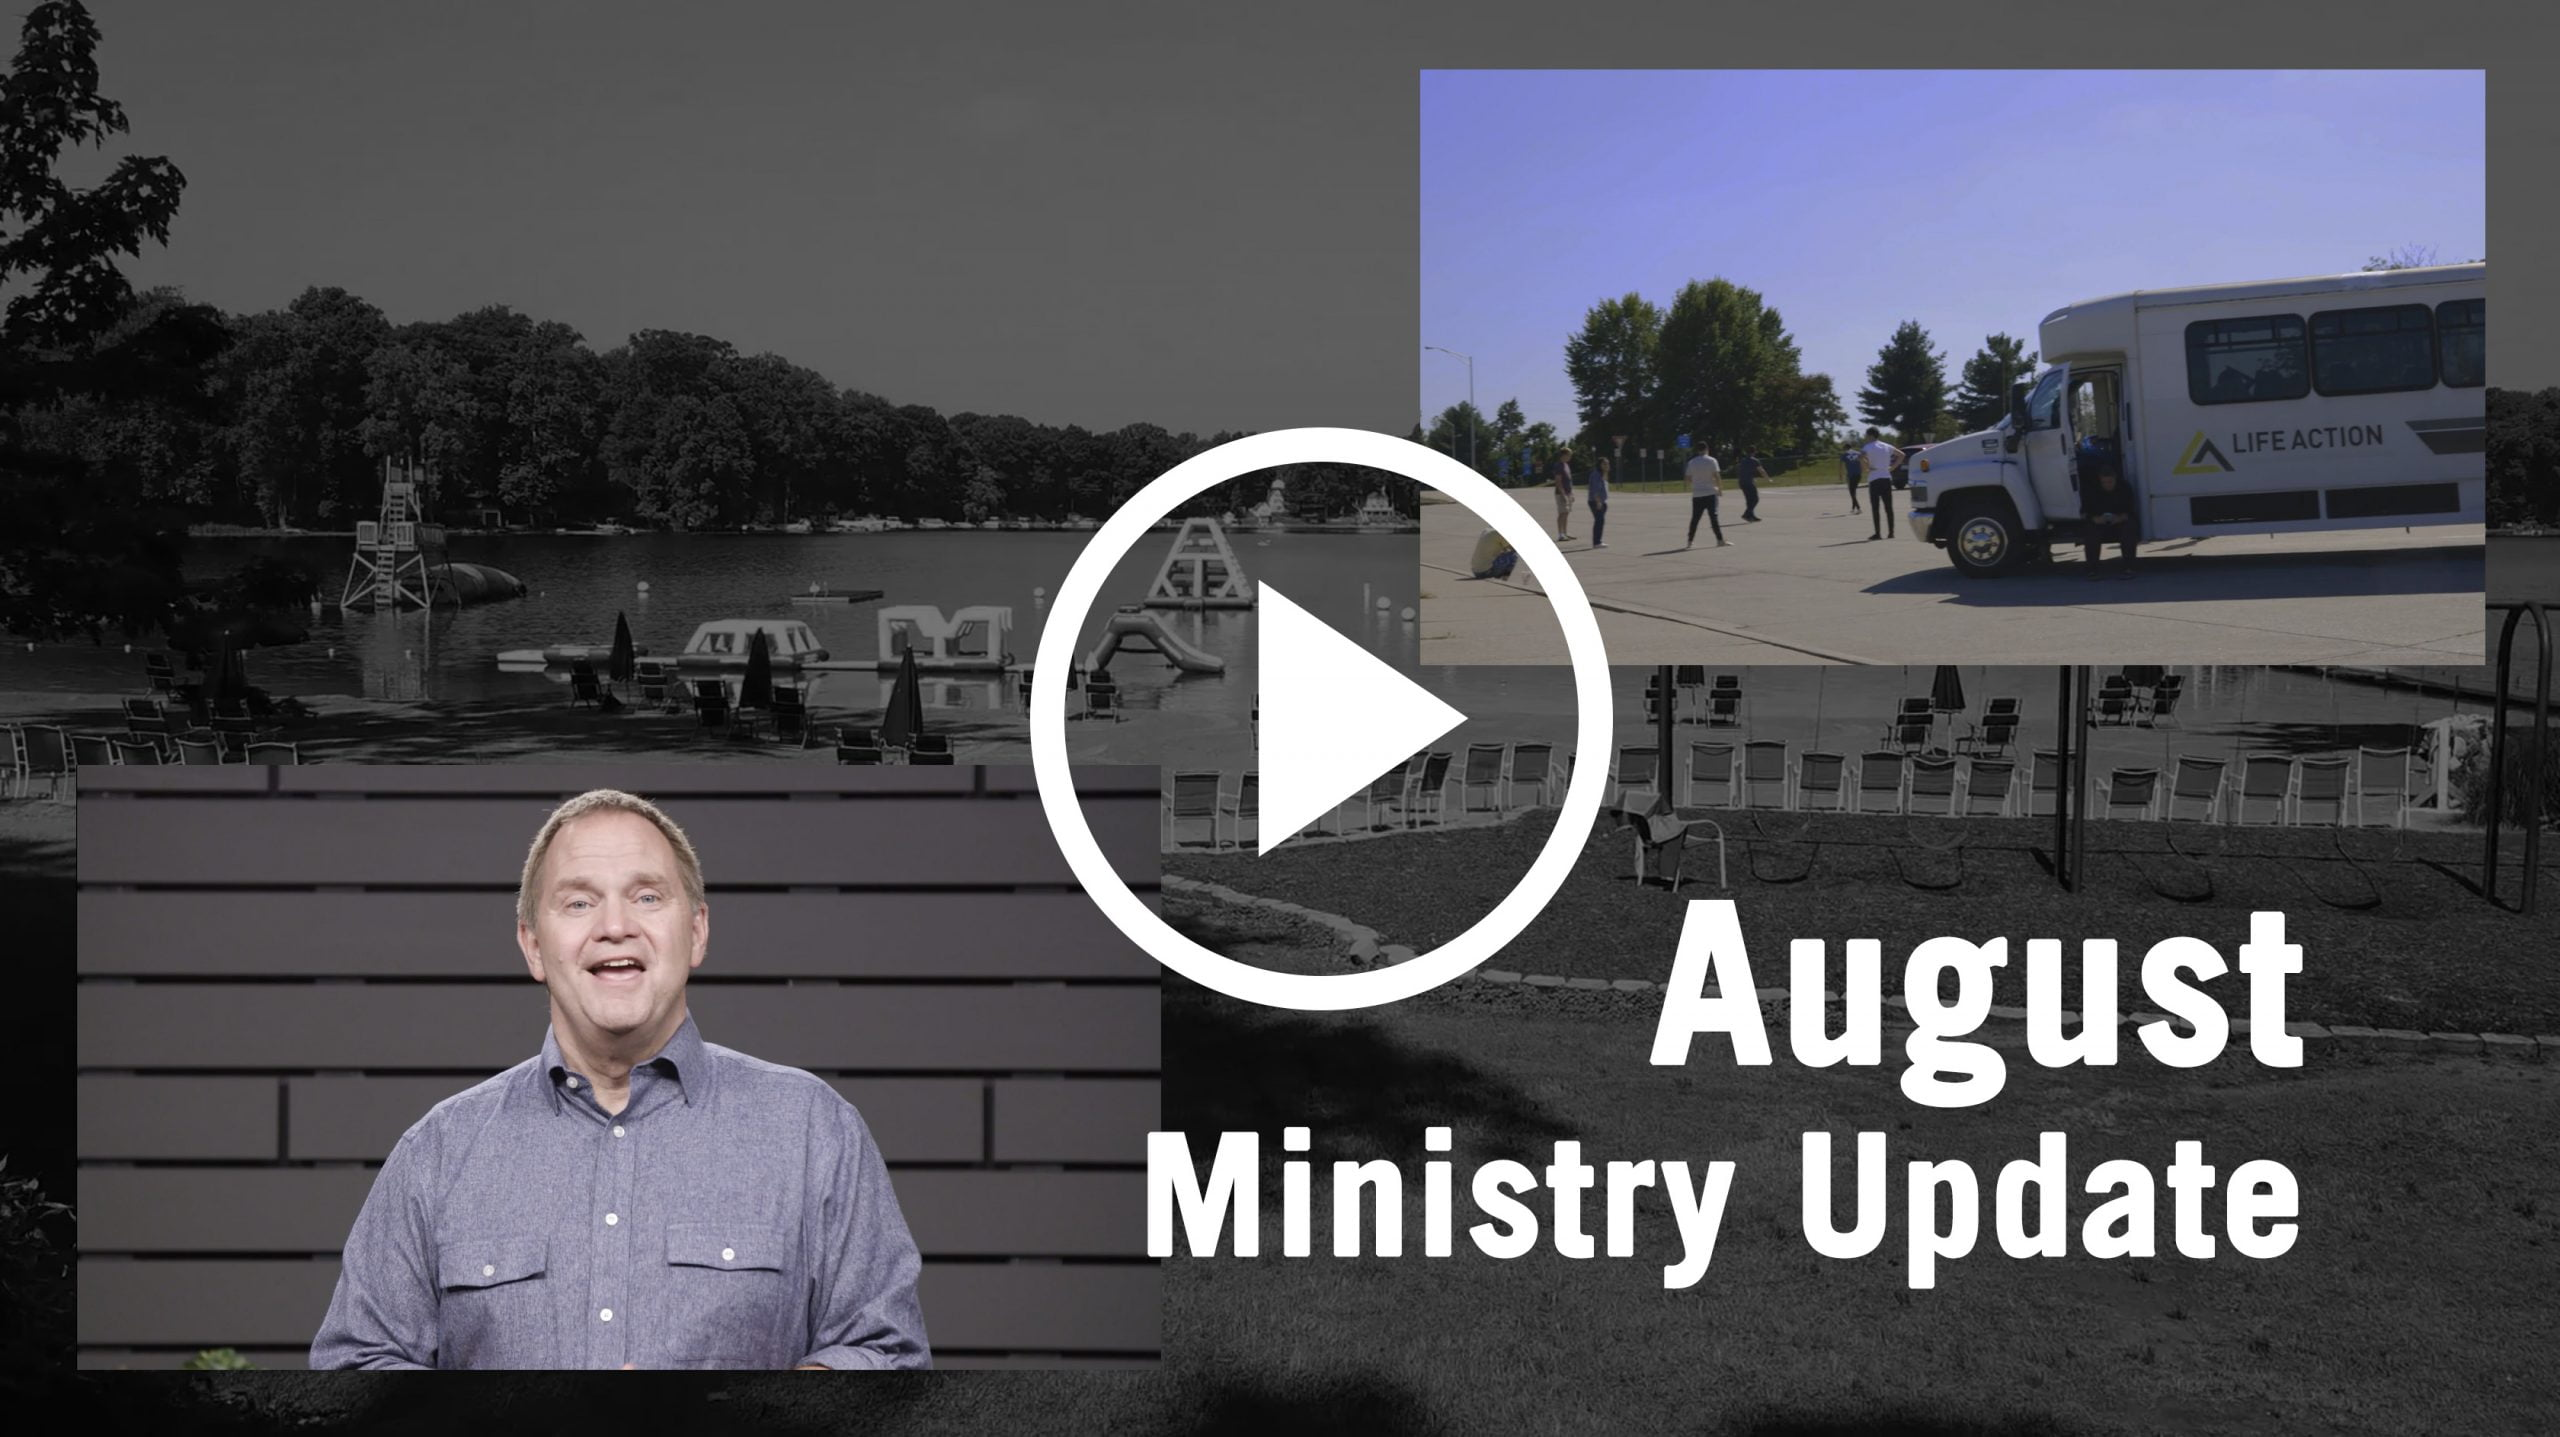 Ministry Update August 2020